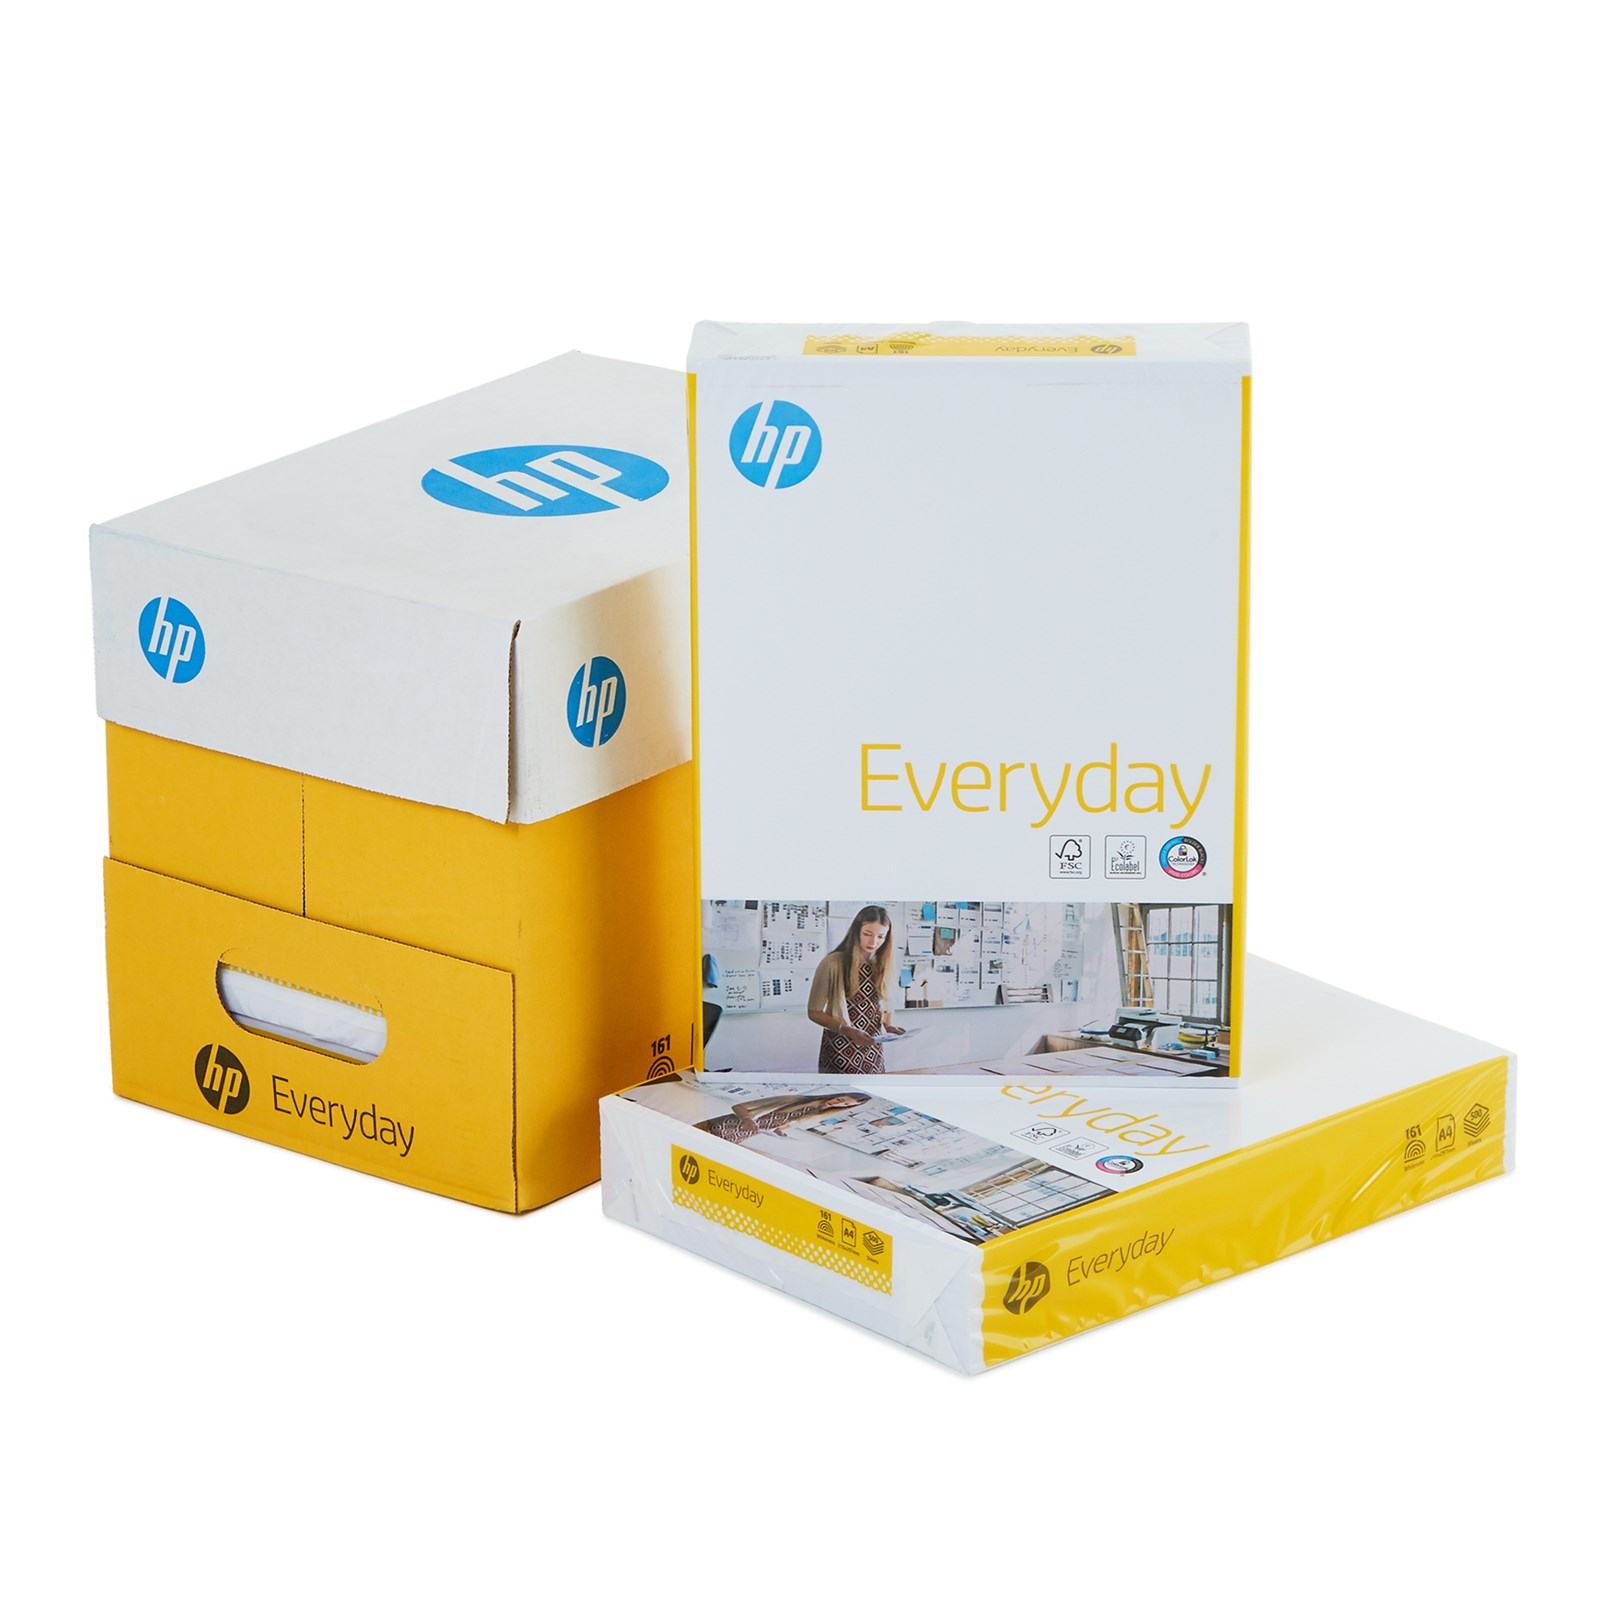 HP Everyday A4 Paper - 5 Reams